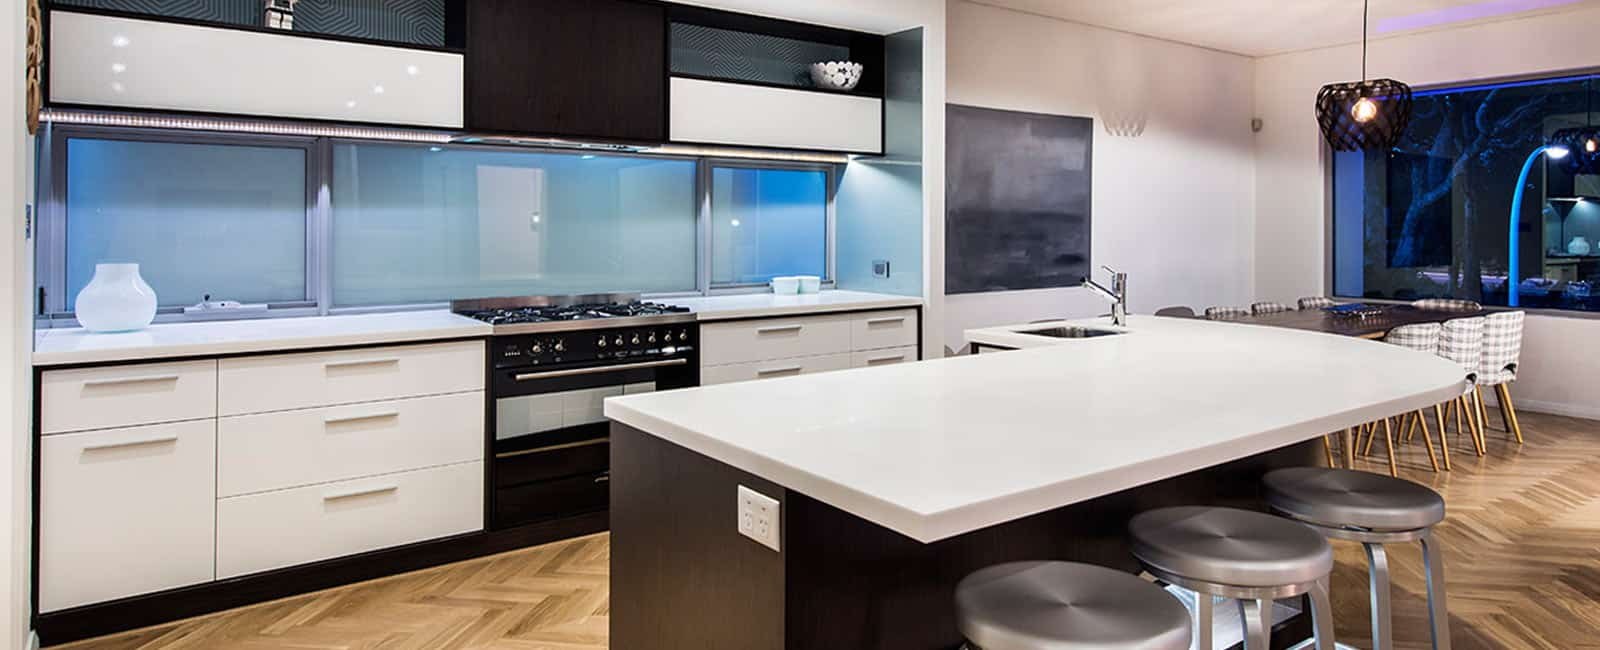 kitchens perth kitchen design renovations kitchen professionals perth wakitchens perth kitchen design renovations kitchen. Interior Design Ideas. Home Design Ideas